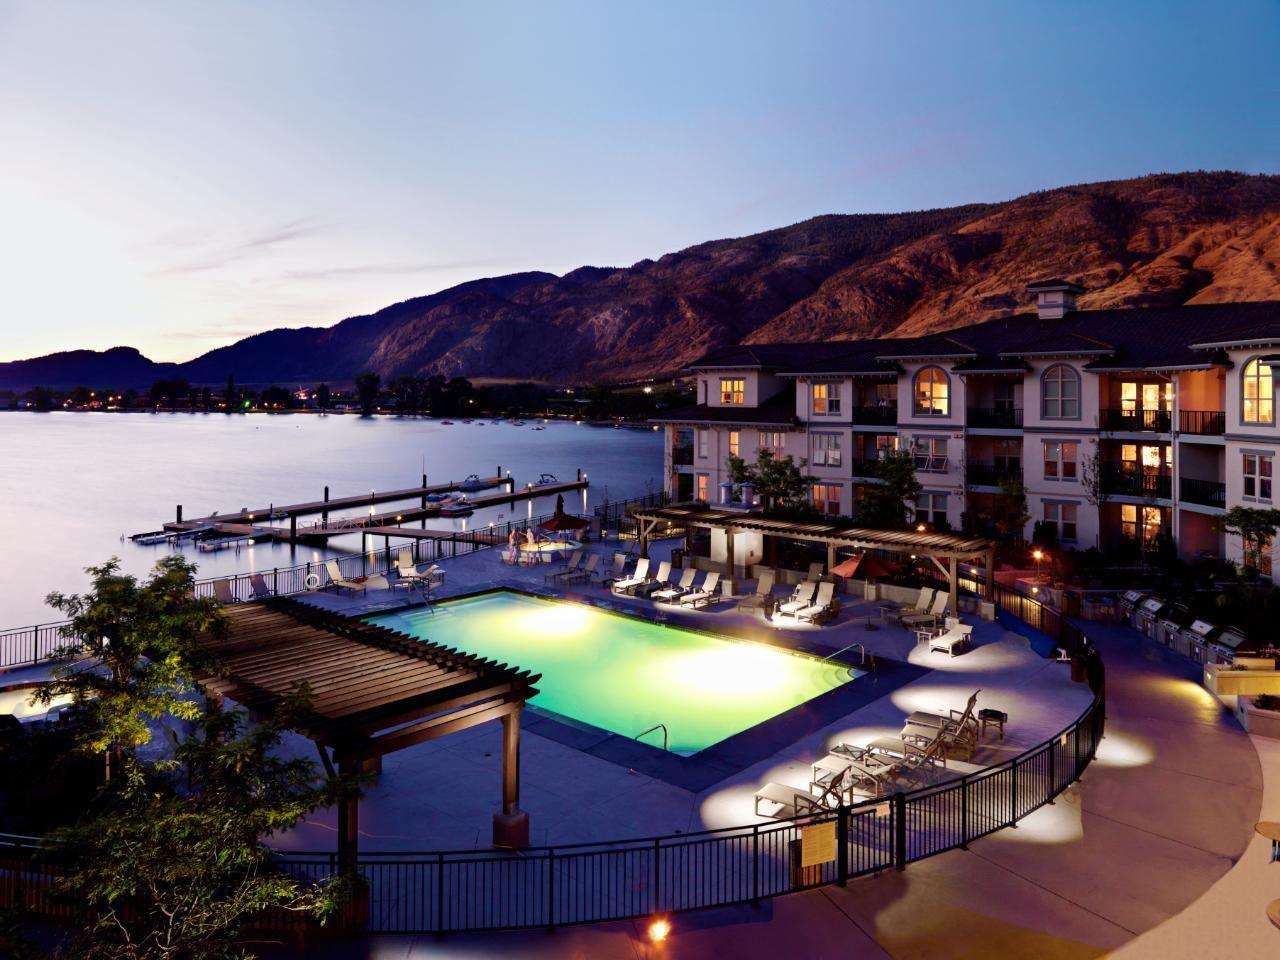 Main Photo: #205 4200 LAKESHORE Drive, in Osoyoos: House for sale : MLS®# 187755